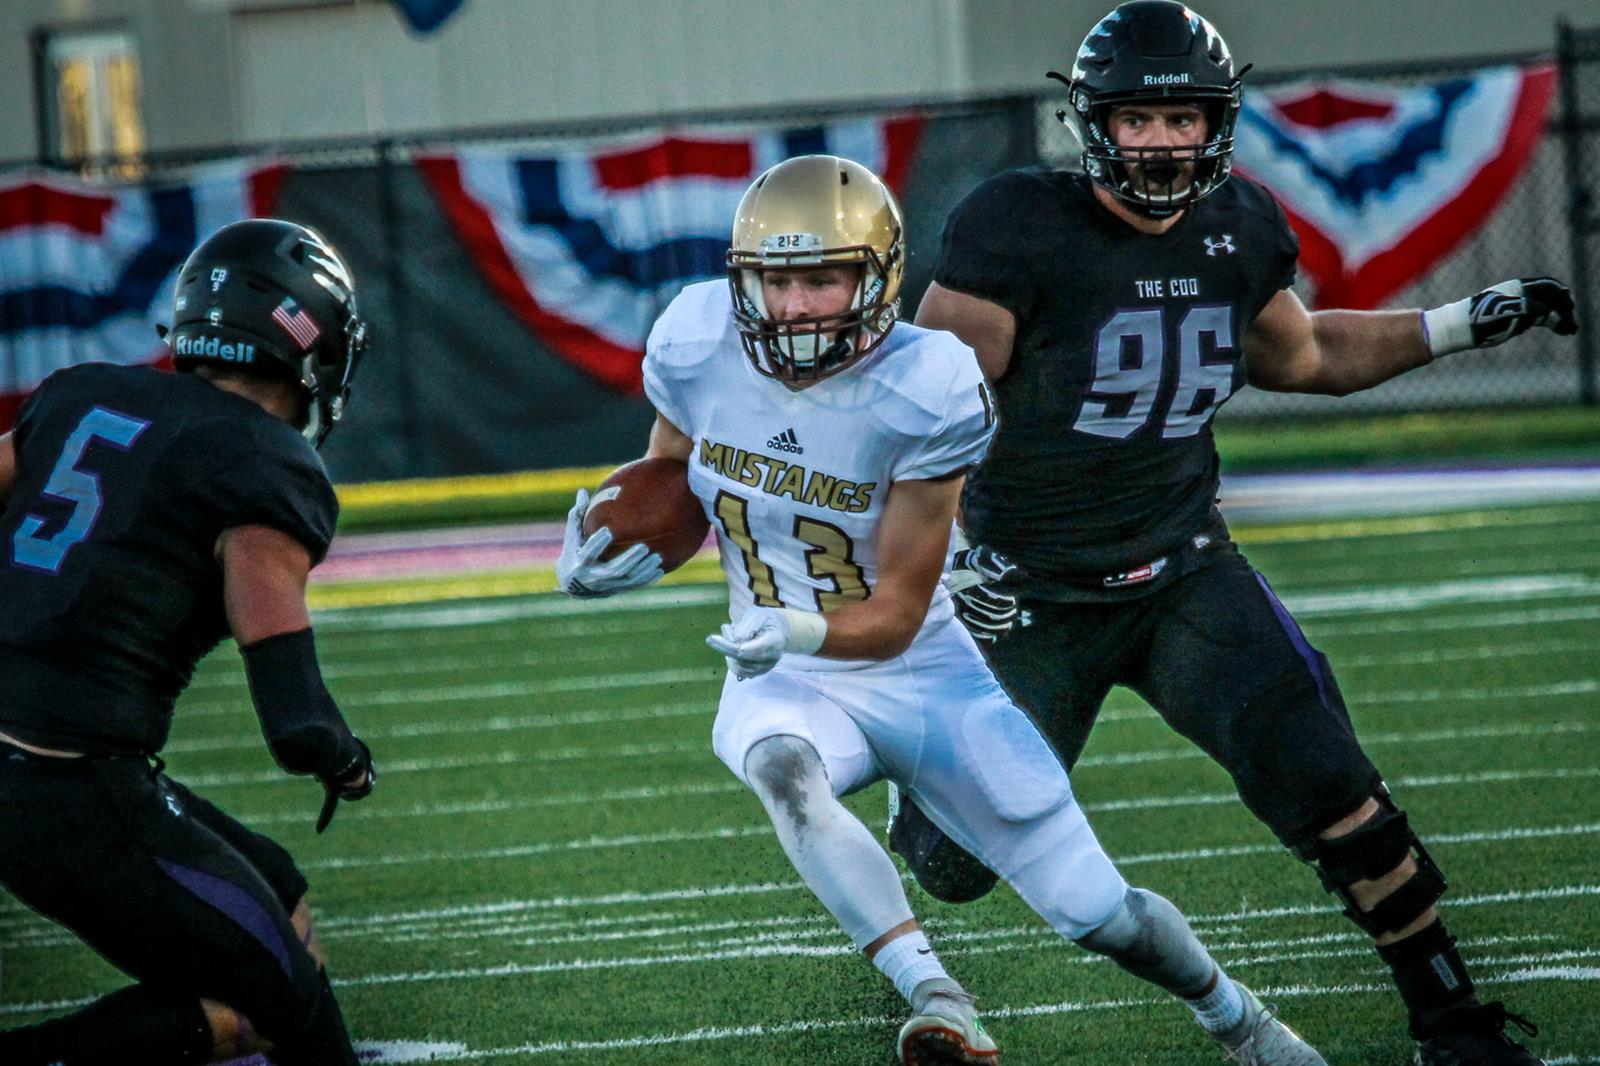 Chance Nelson Football Smsu Athletics